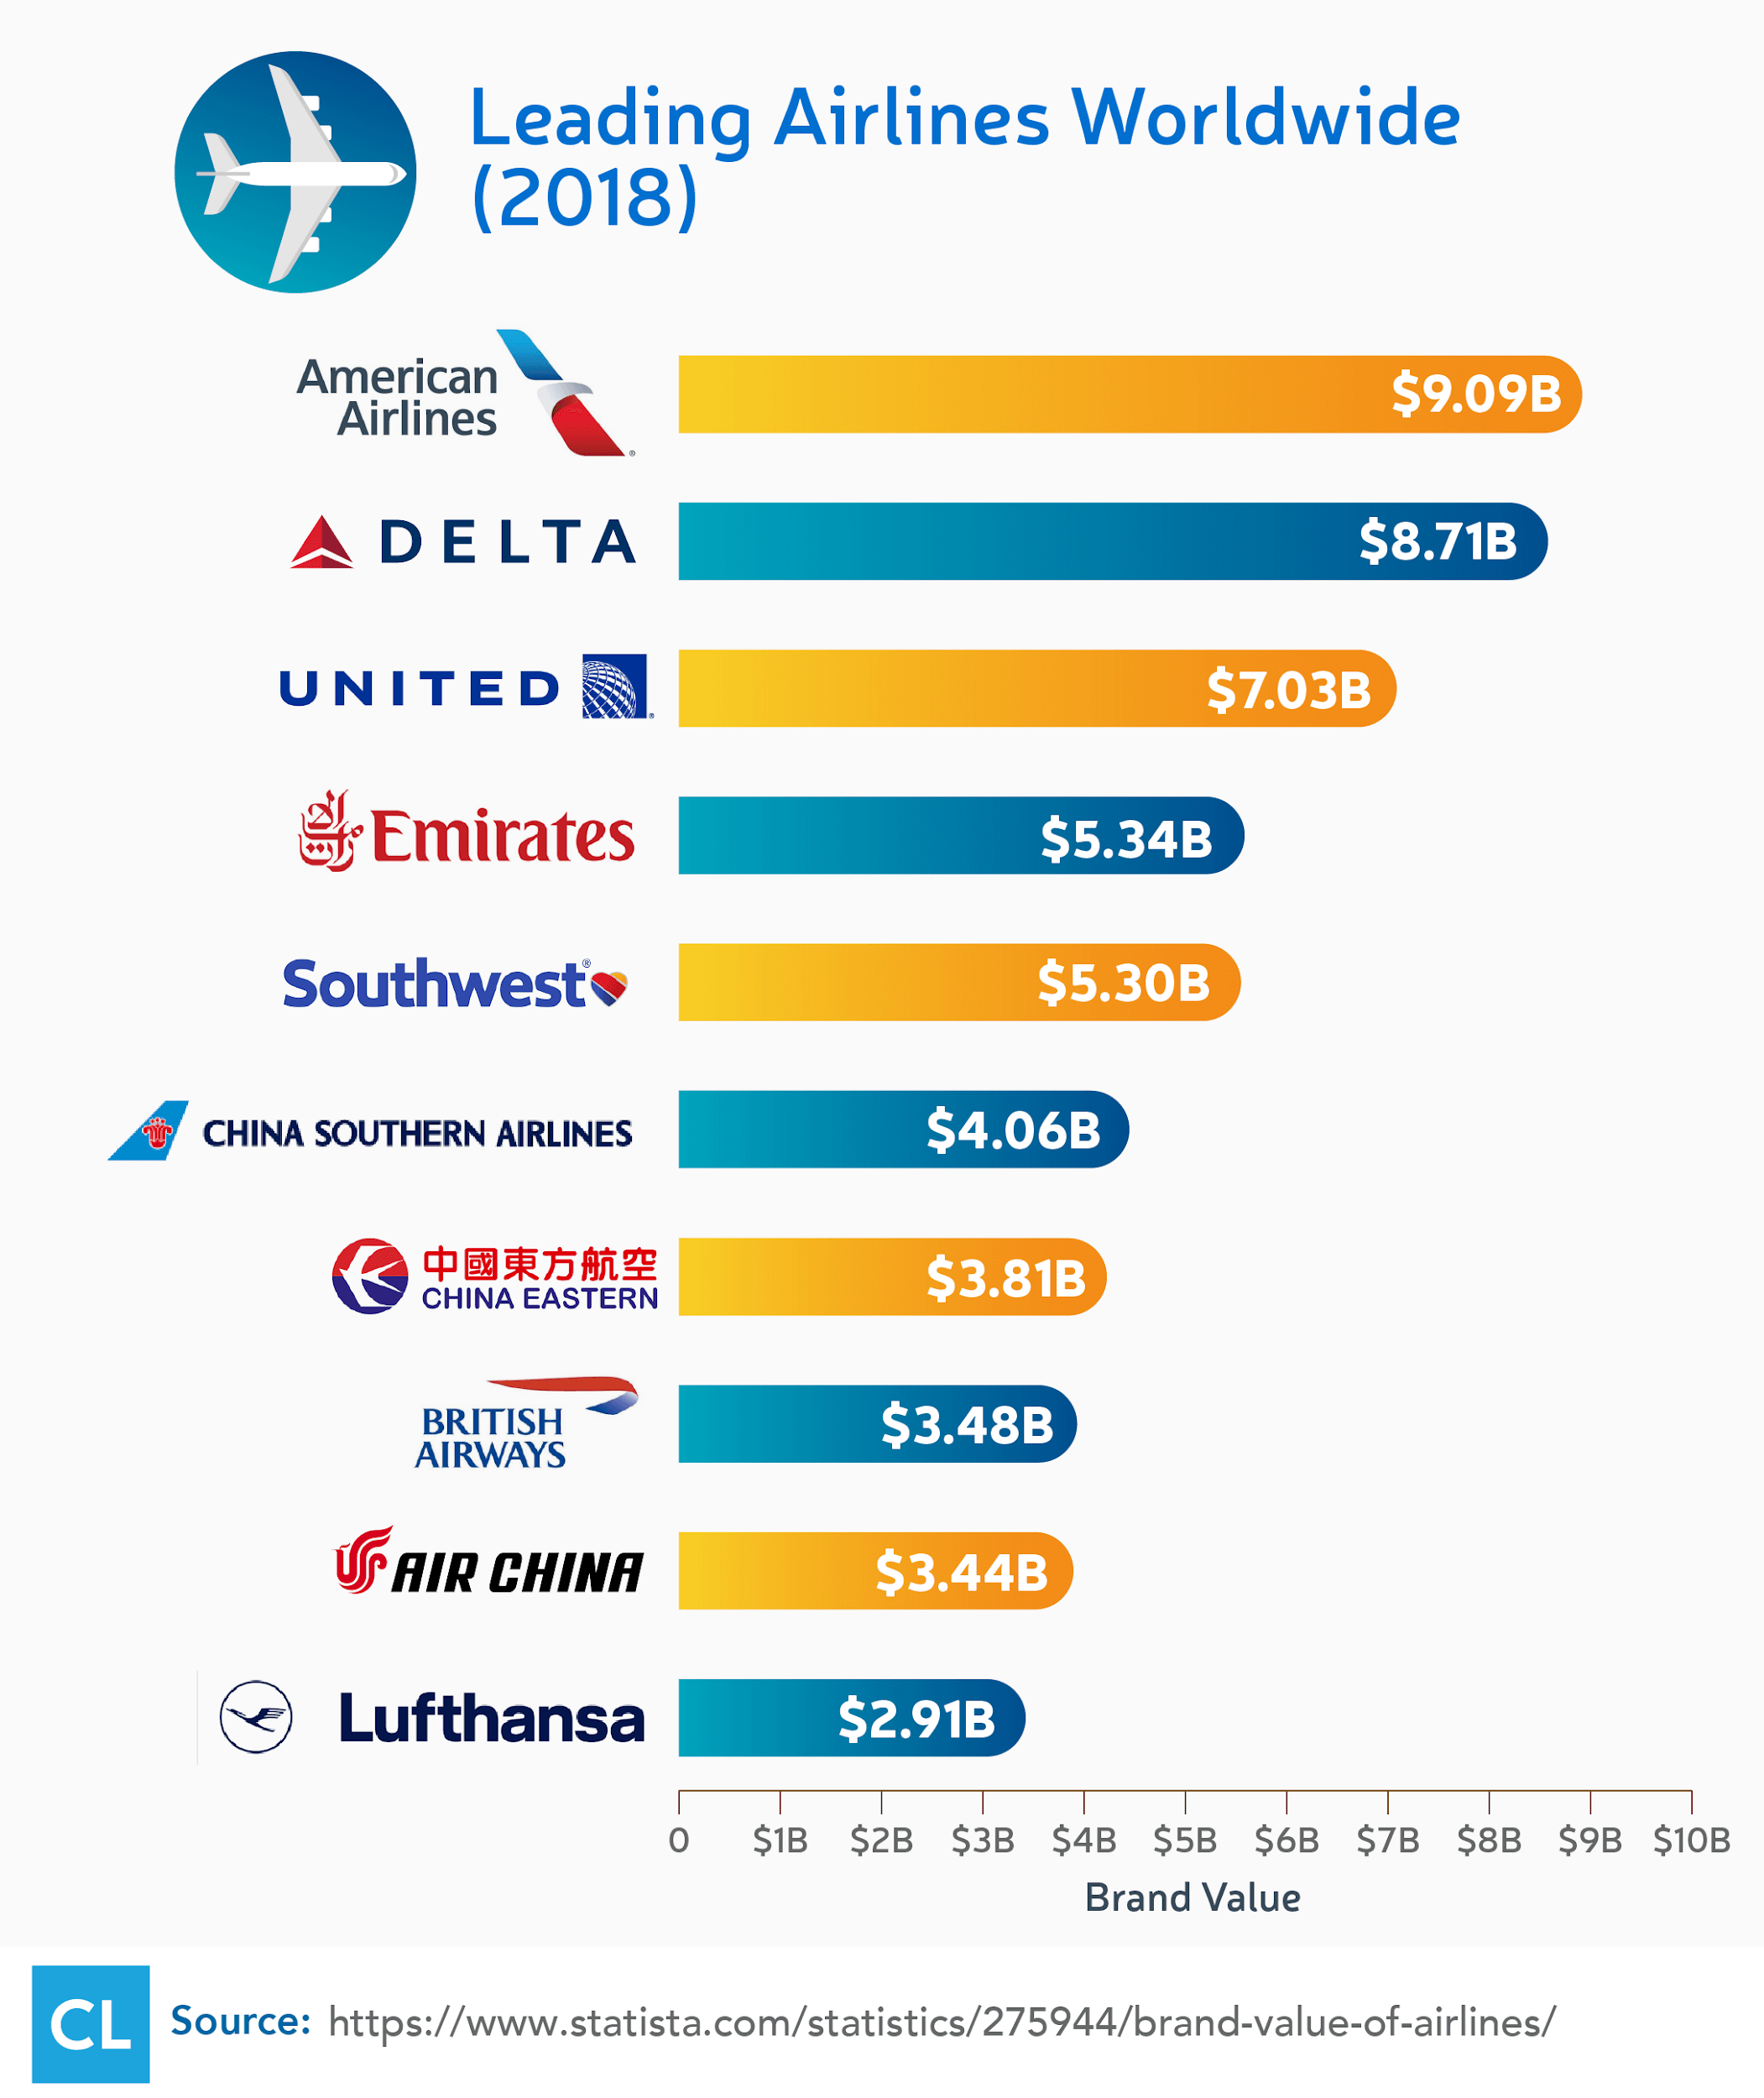 2018 Leading Airlines Worldwide